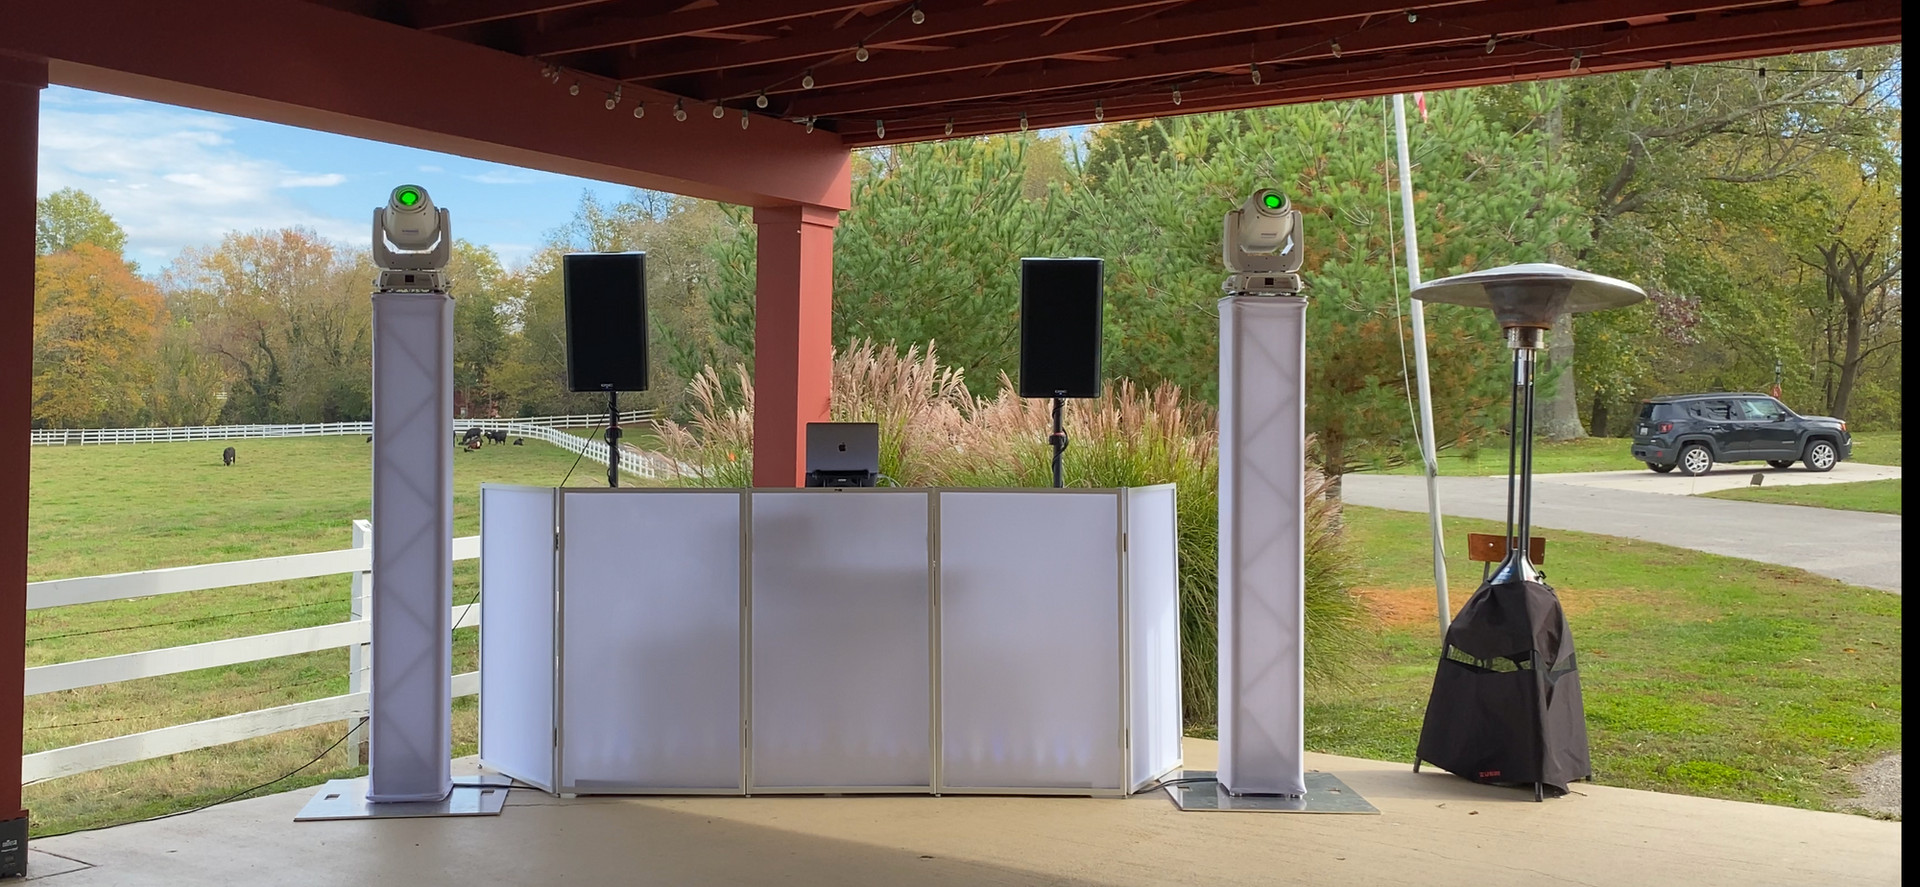 DJ Booth complete with lighting and patio heater